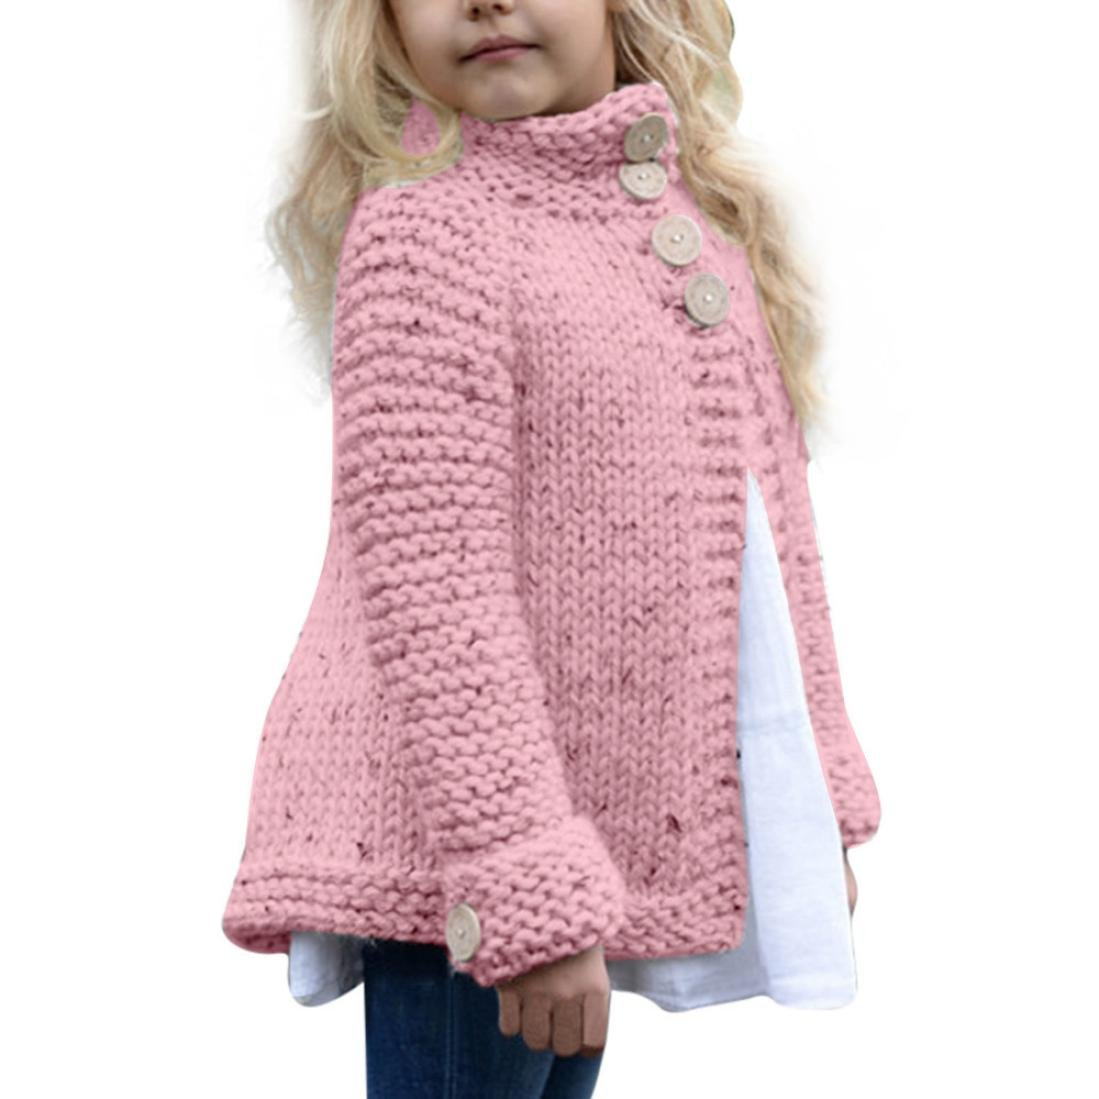 DEESEE(TM)) Toddler Baby Girls Outfit Button Knitted Sweater Cardigan Coat Tops for 2-8 Years Old